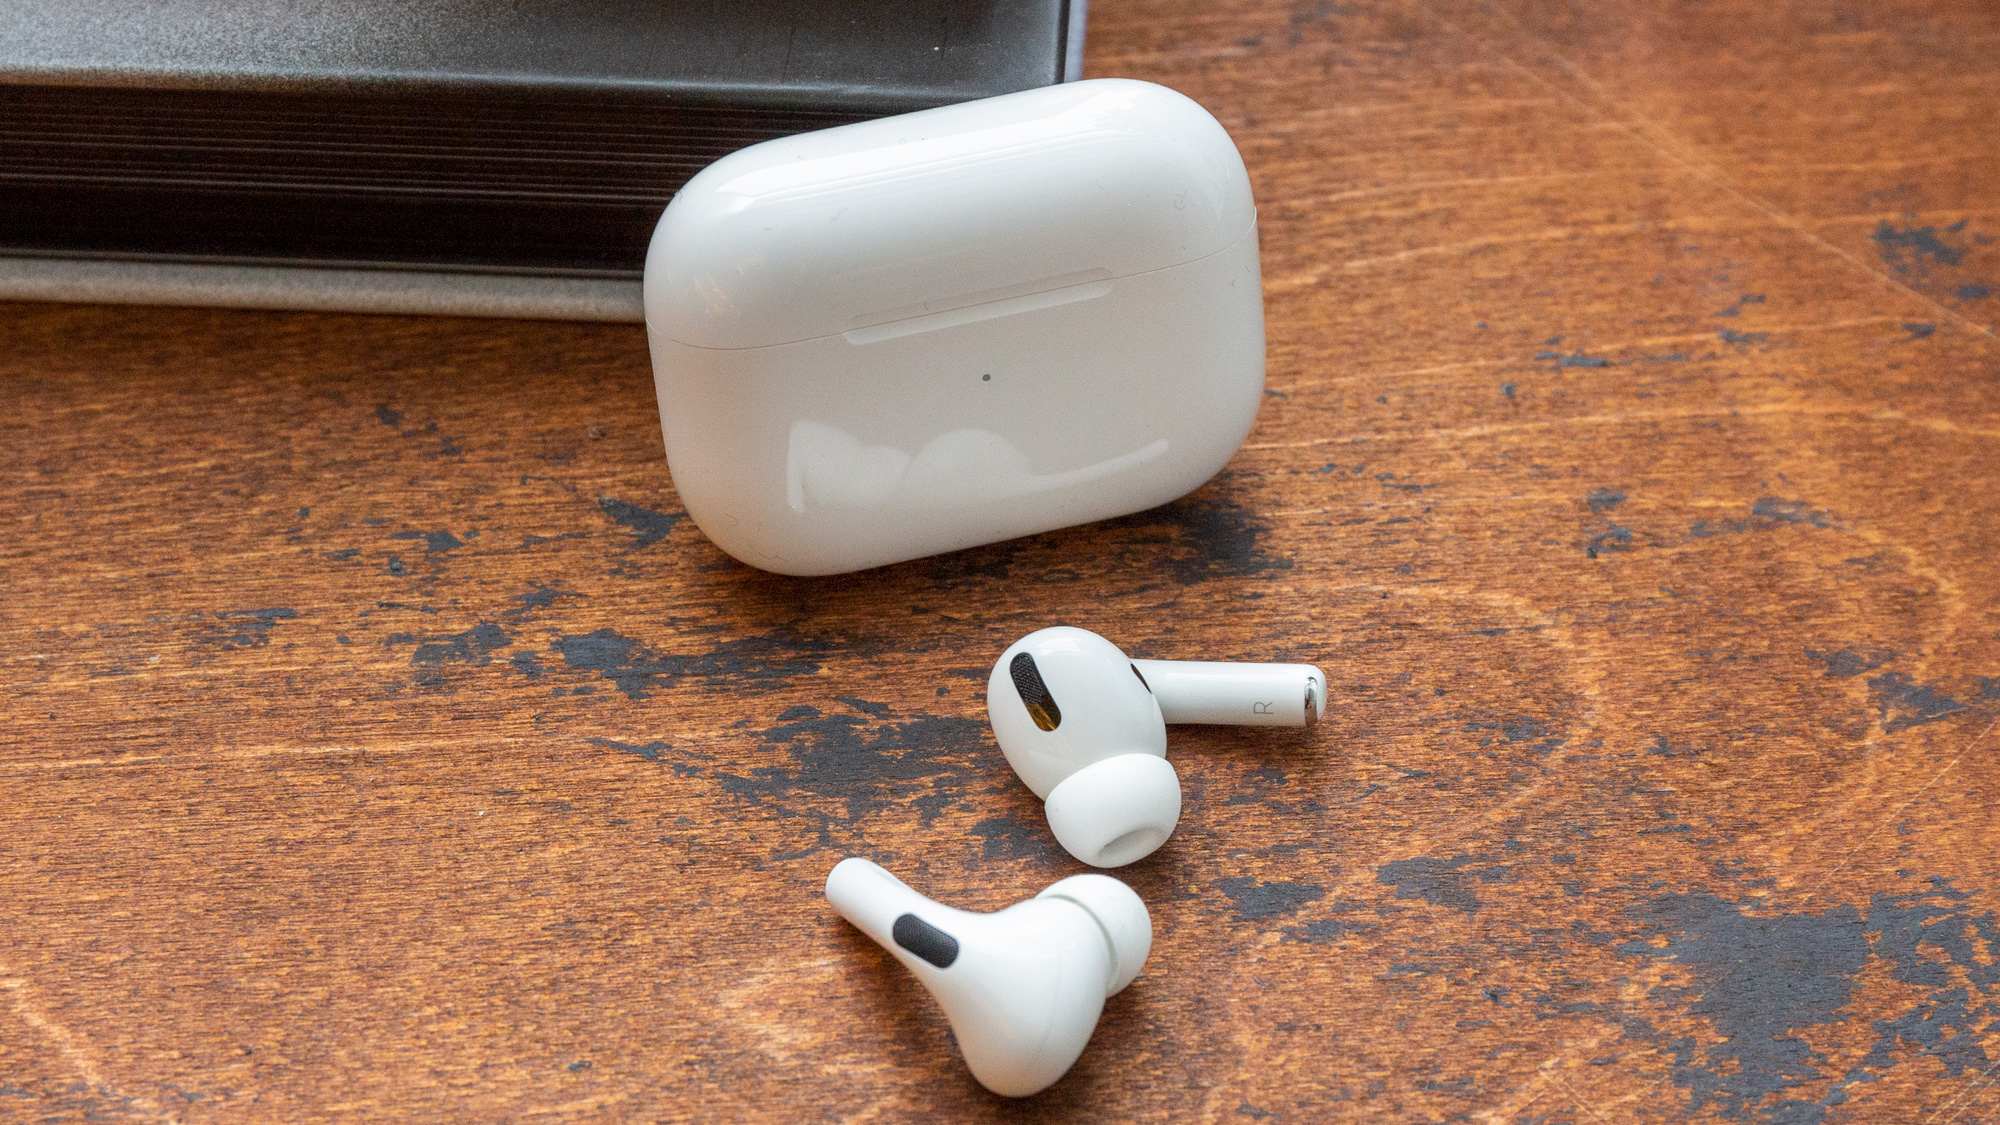 AirPods X price, release date, features and rumors | Tom's Guide